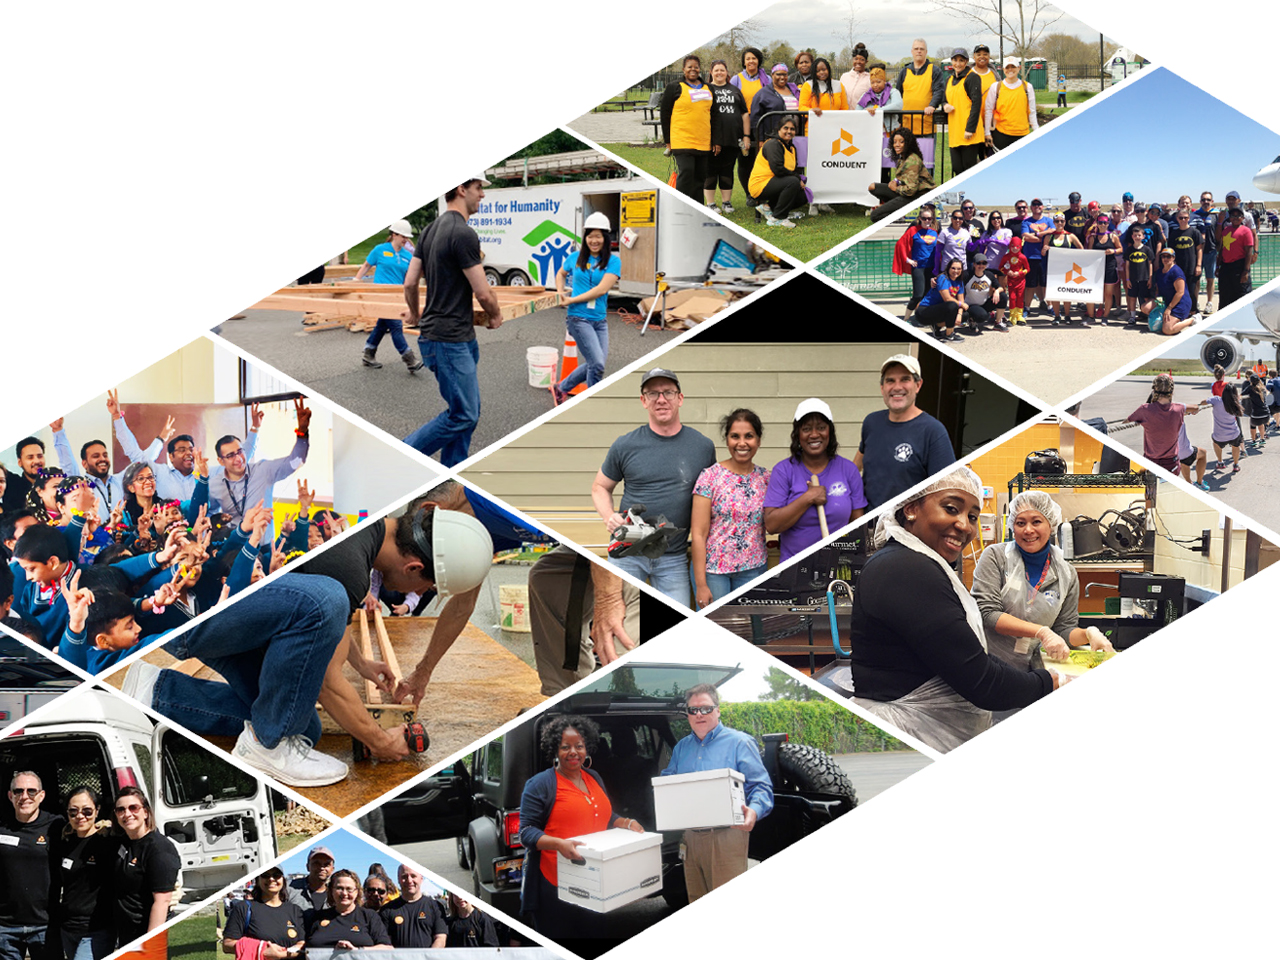 2019 CSR Report: In 2019, 21,234 Conduent employees, took part in 141 volunteer projects, donating over 49,000 hours across the globe.